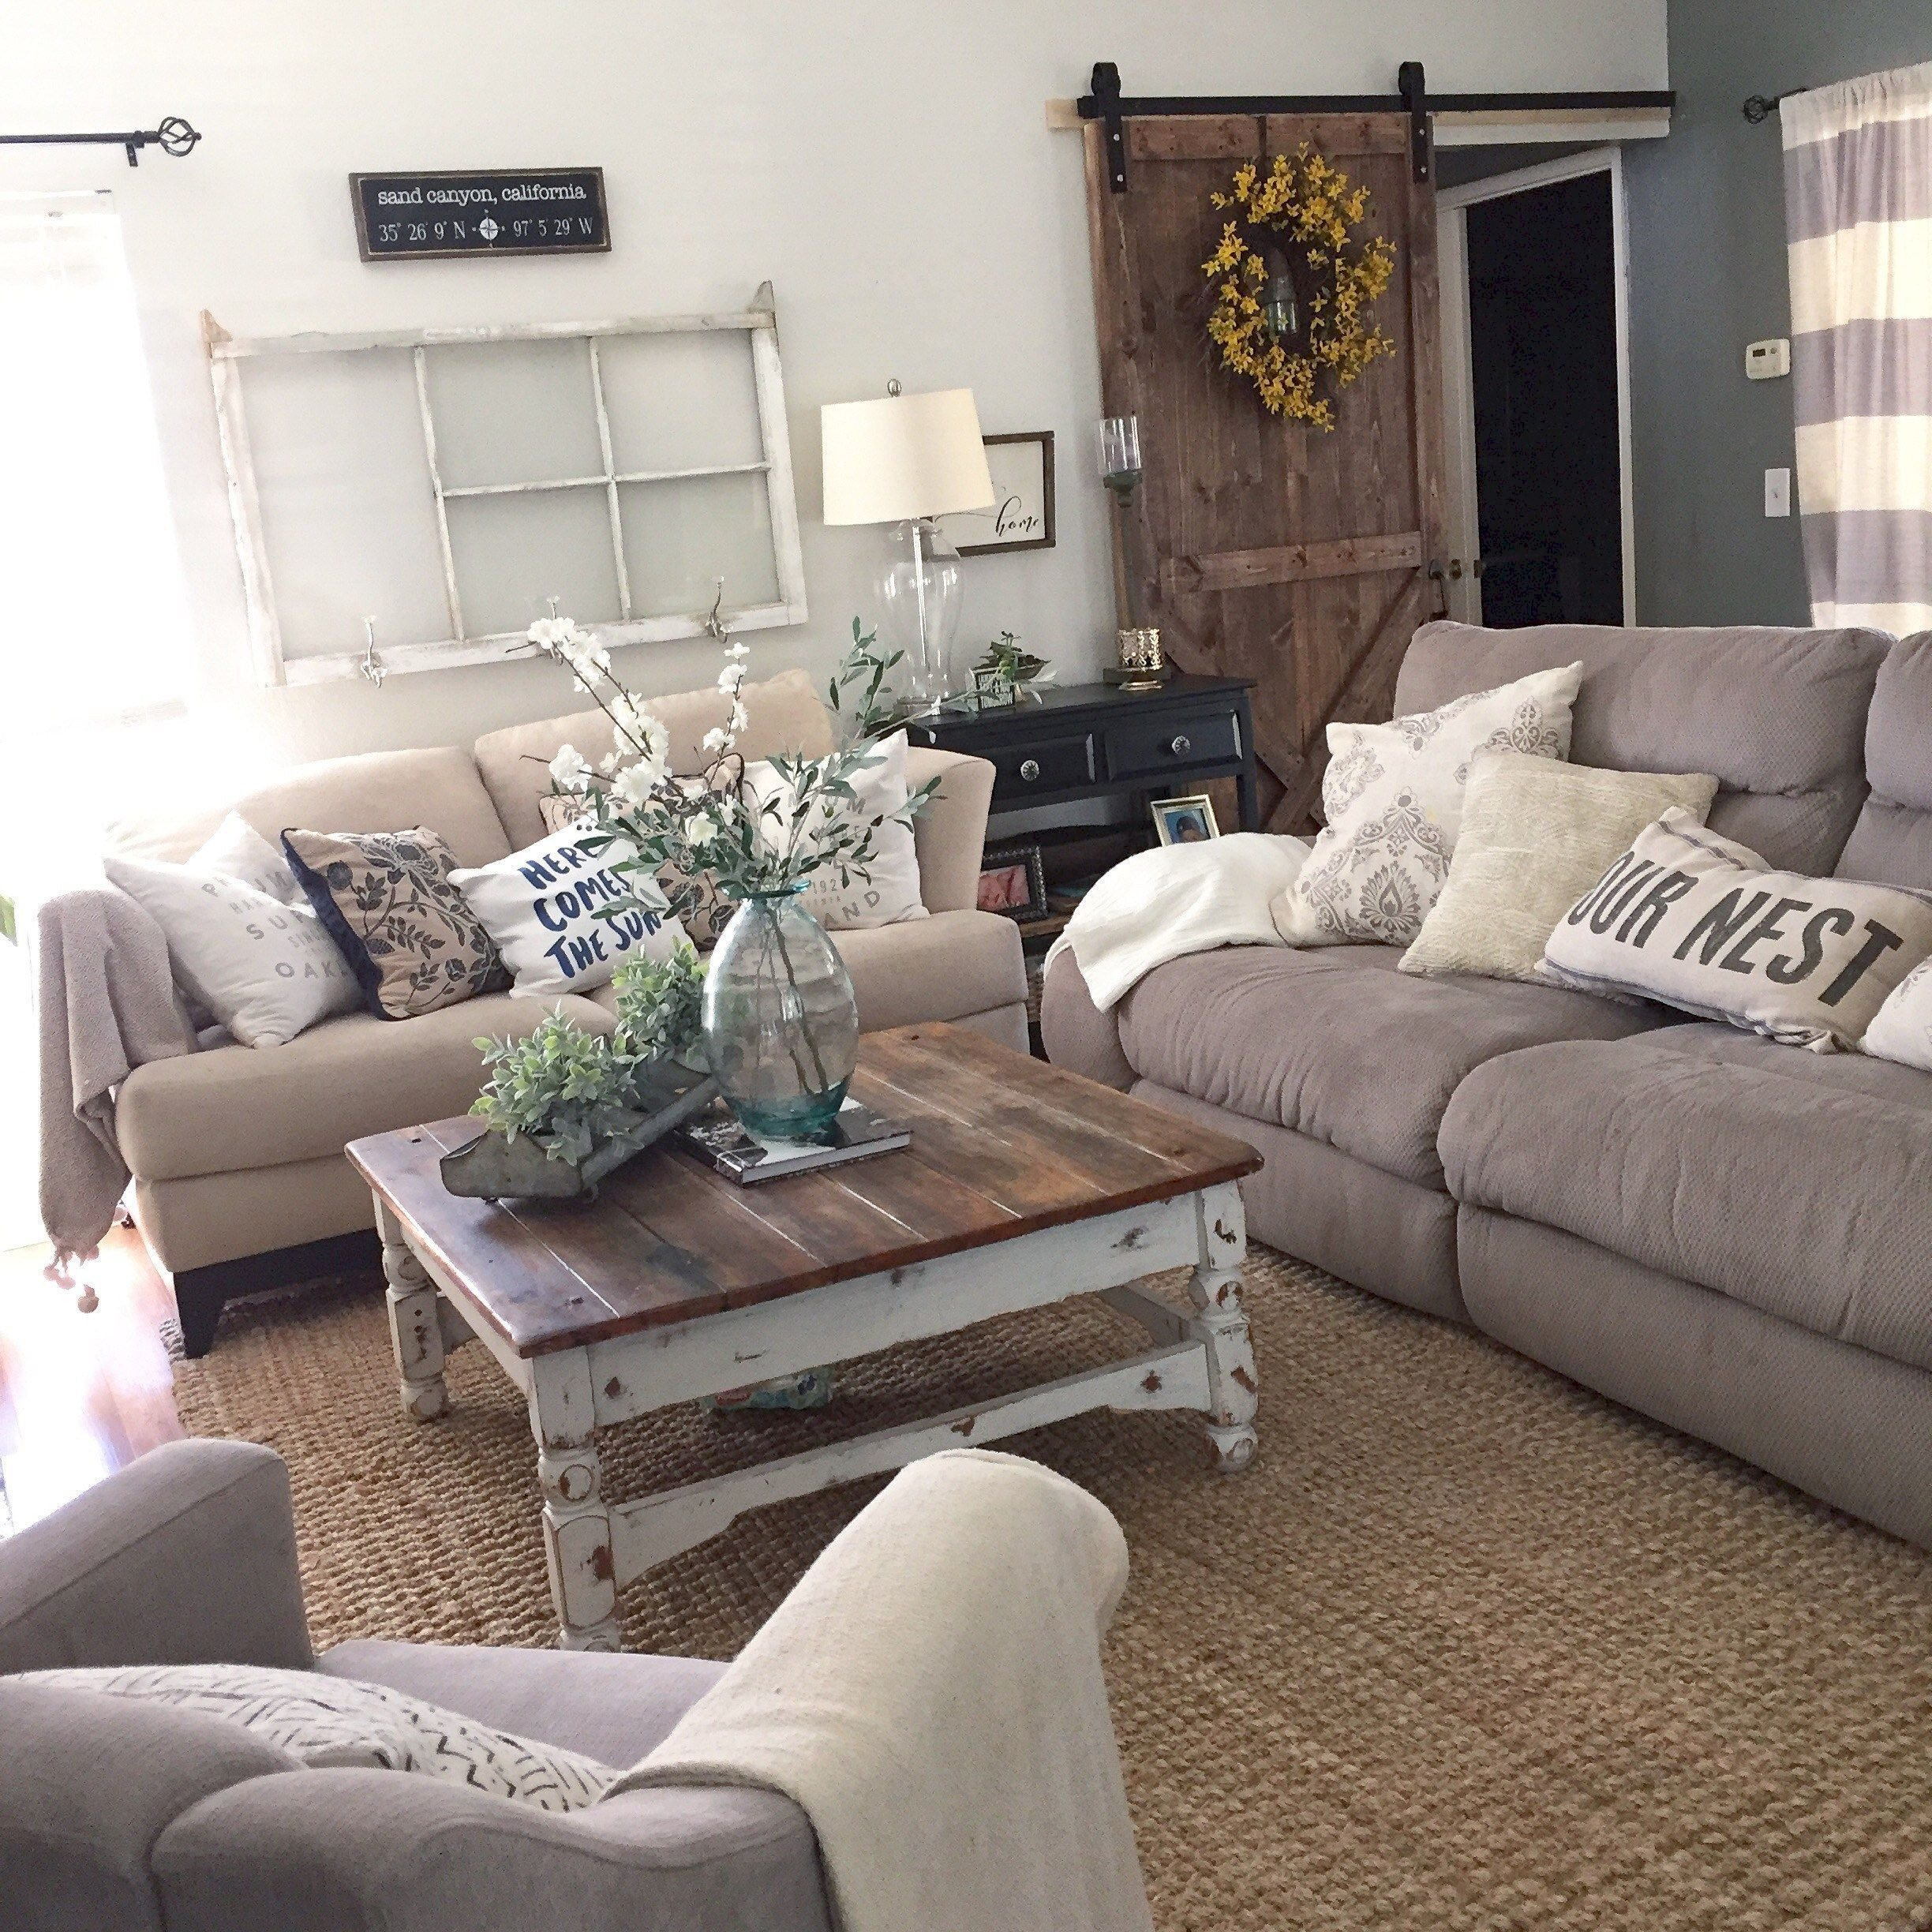 Rustic Chic Decor Living Room Luxury Adorable Cozy and Rustic Chic Living Room for Your